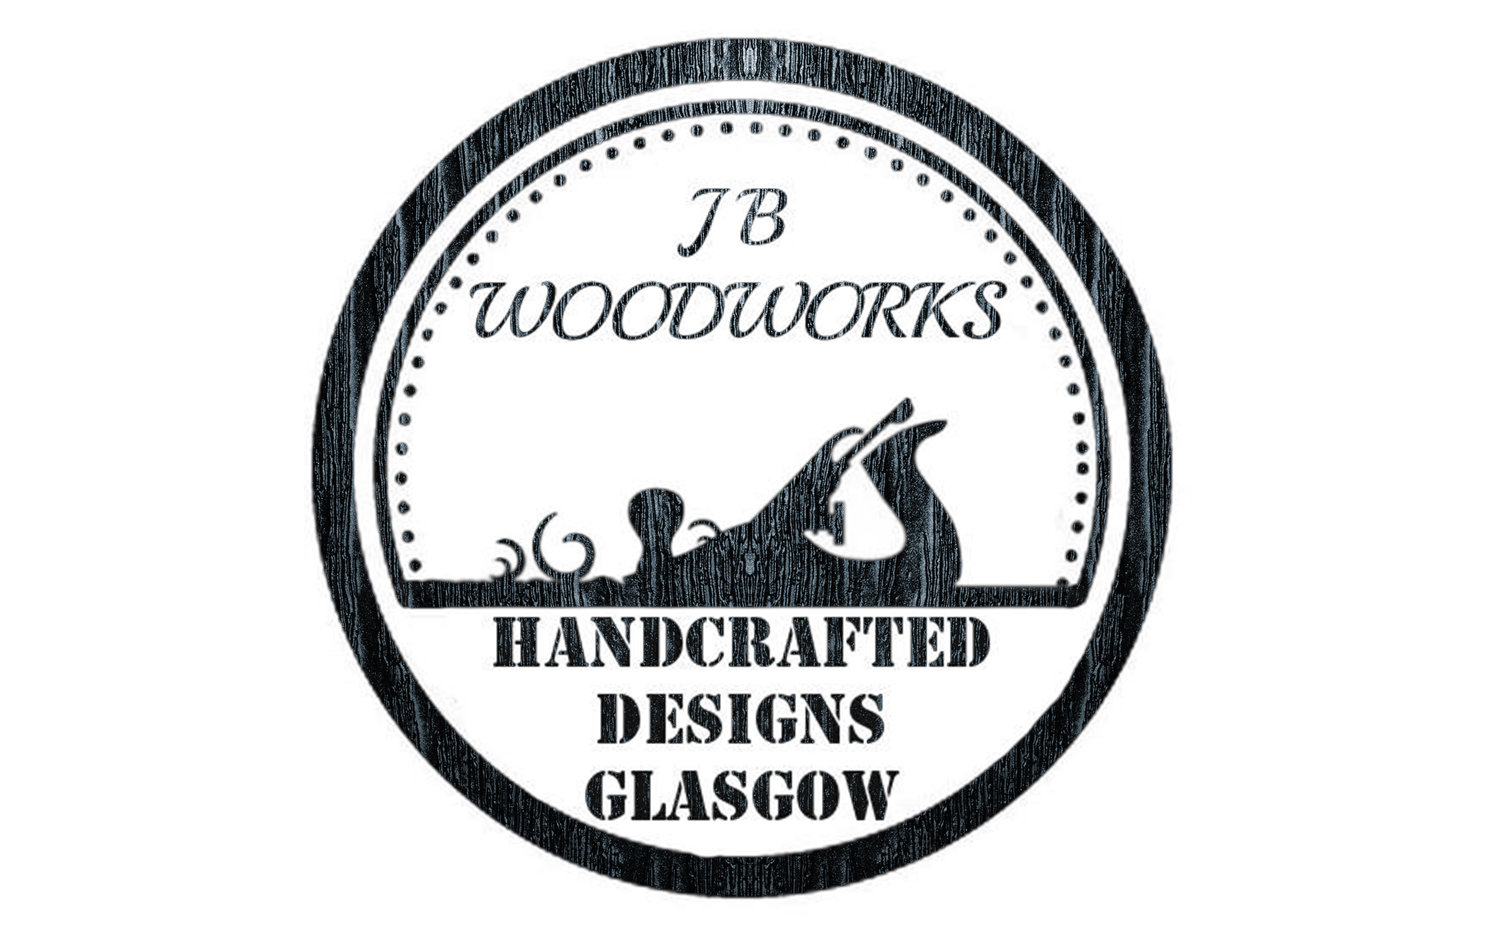 JB Woodworks Glasgow